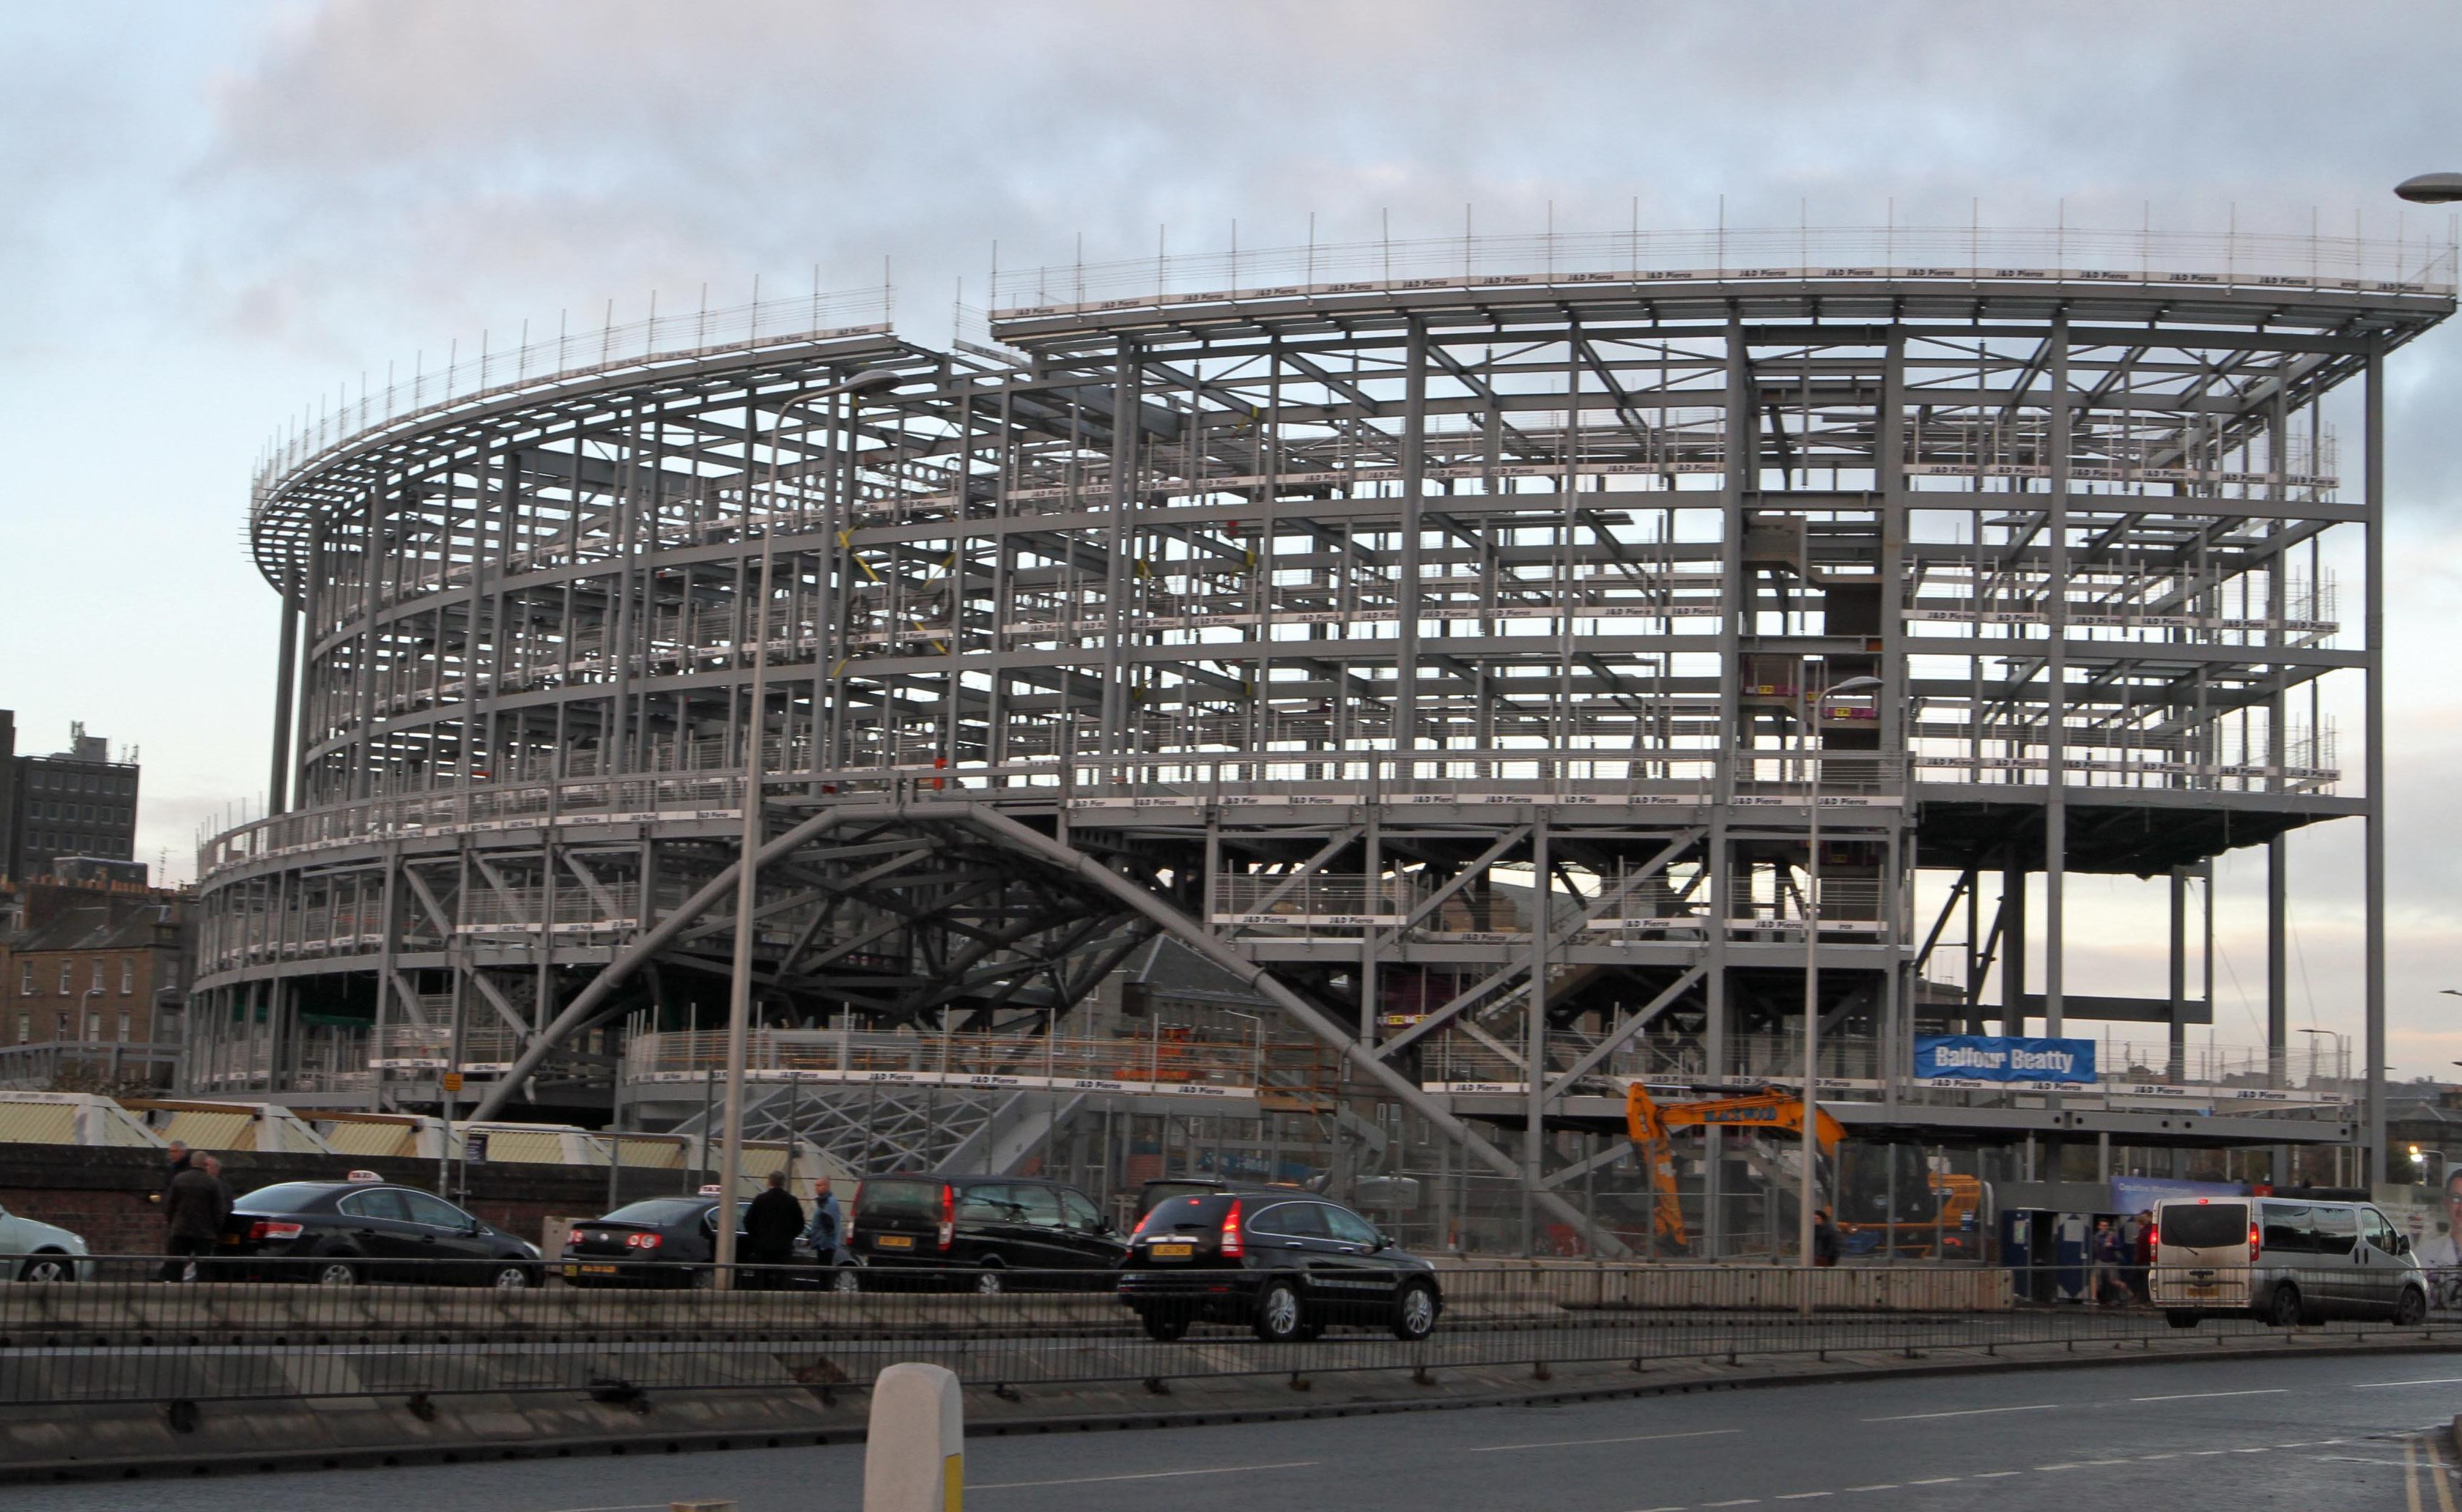 Dundee railway station is currently being redeveloped.